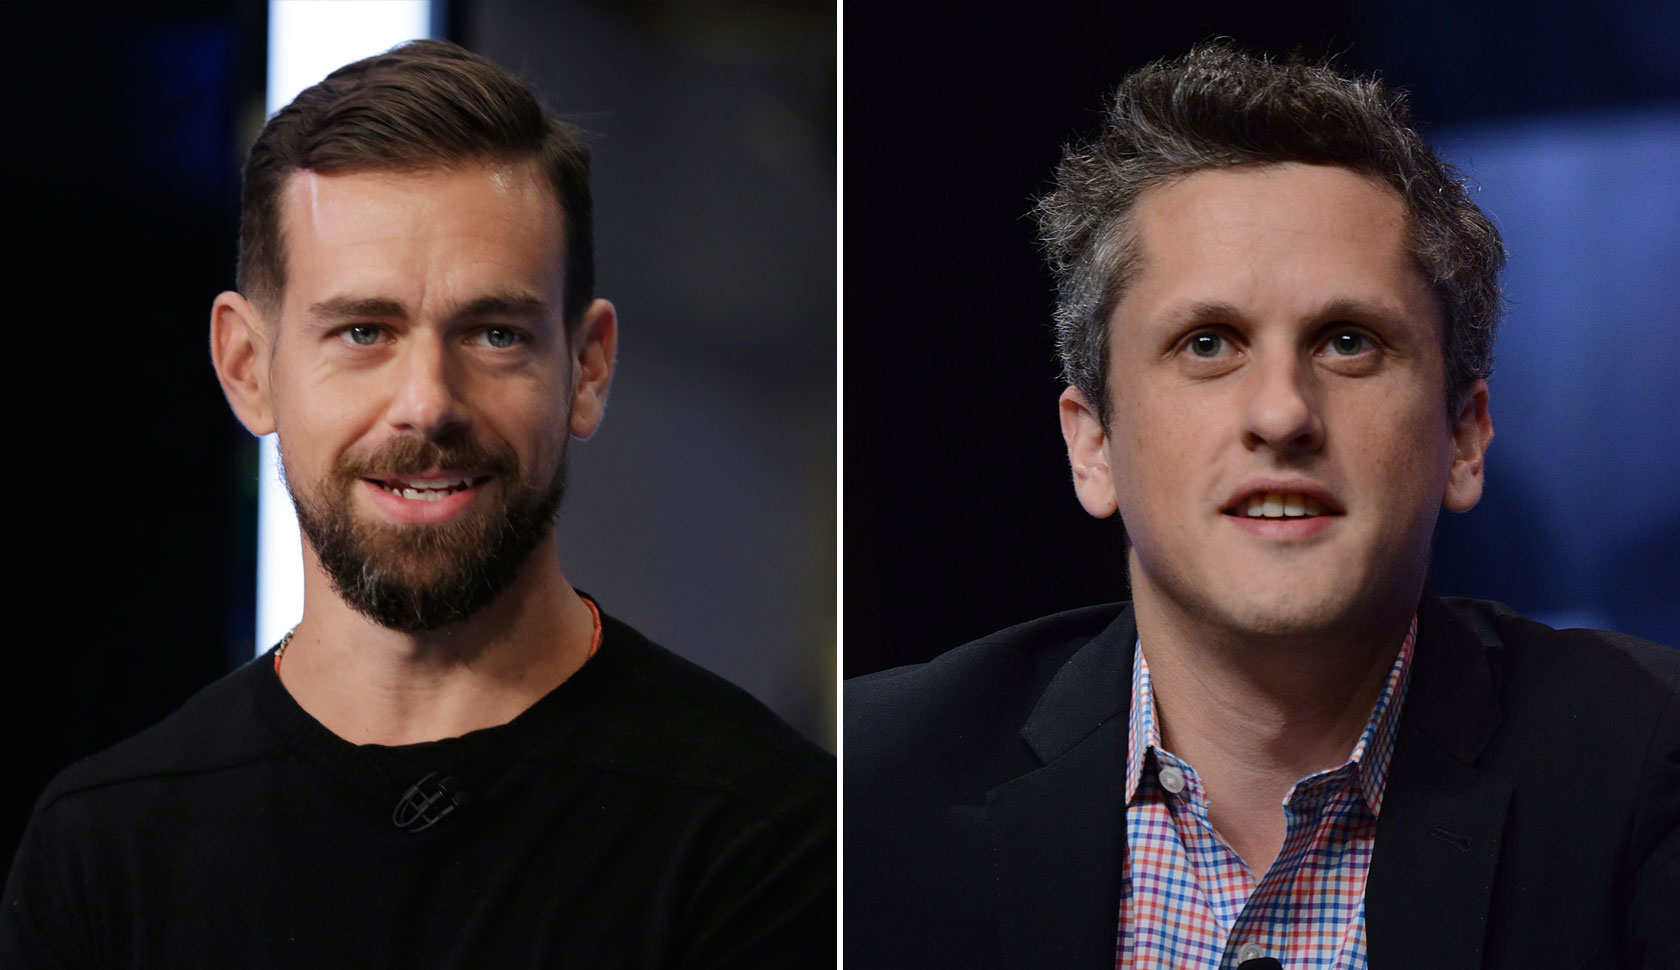 Jack Dorsey Aaron Levie 2015 Split